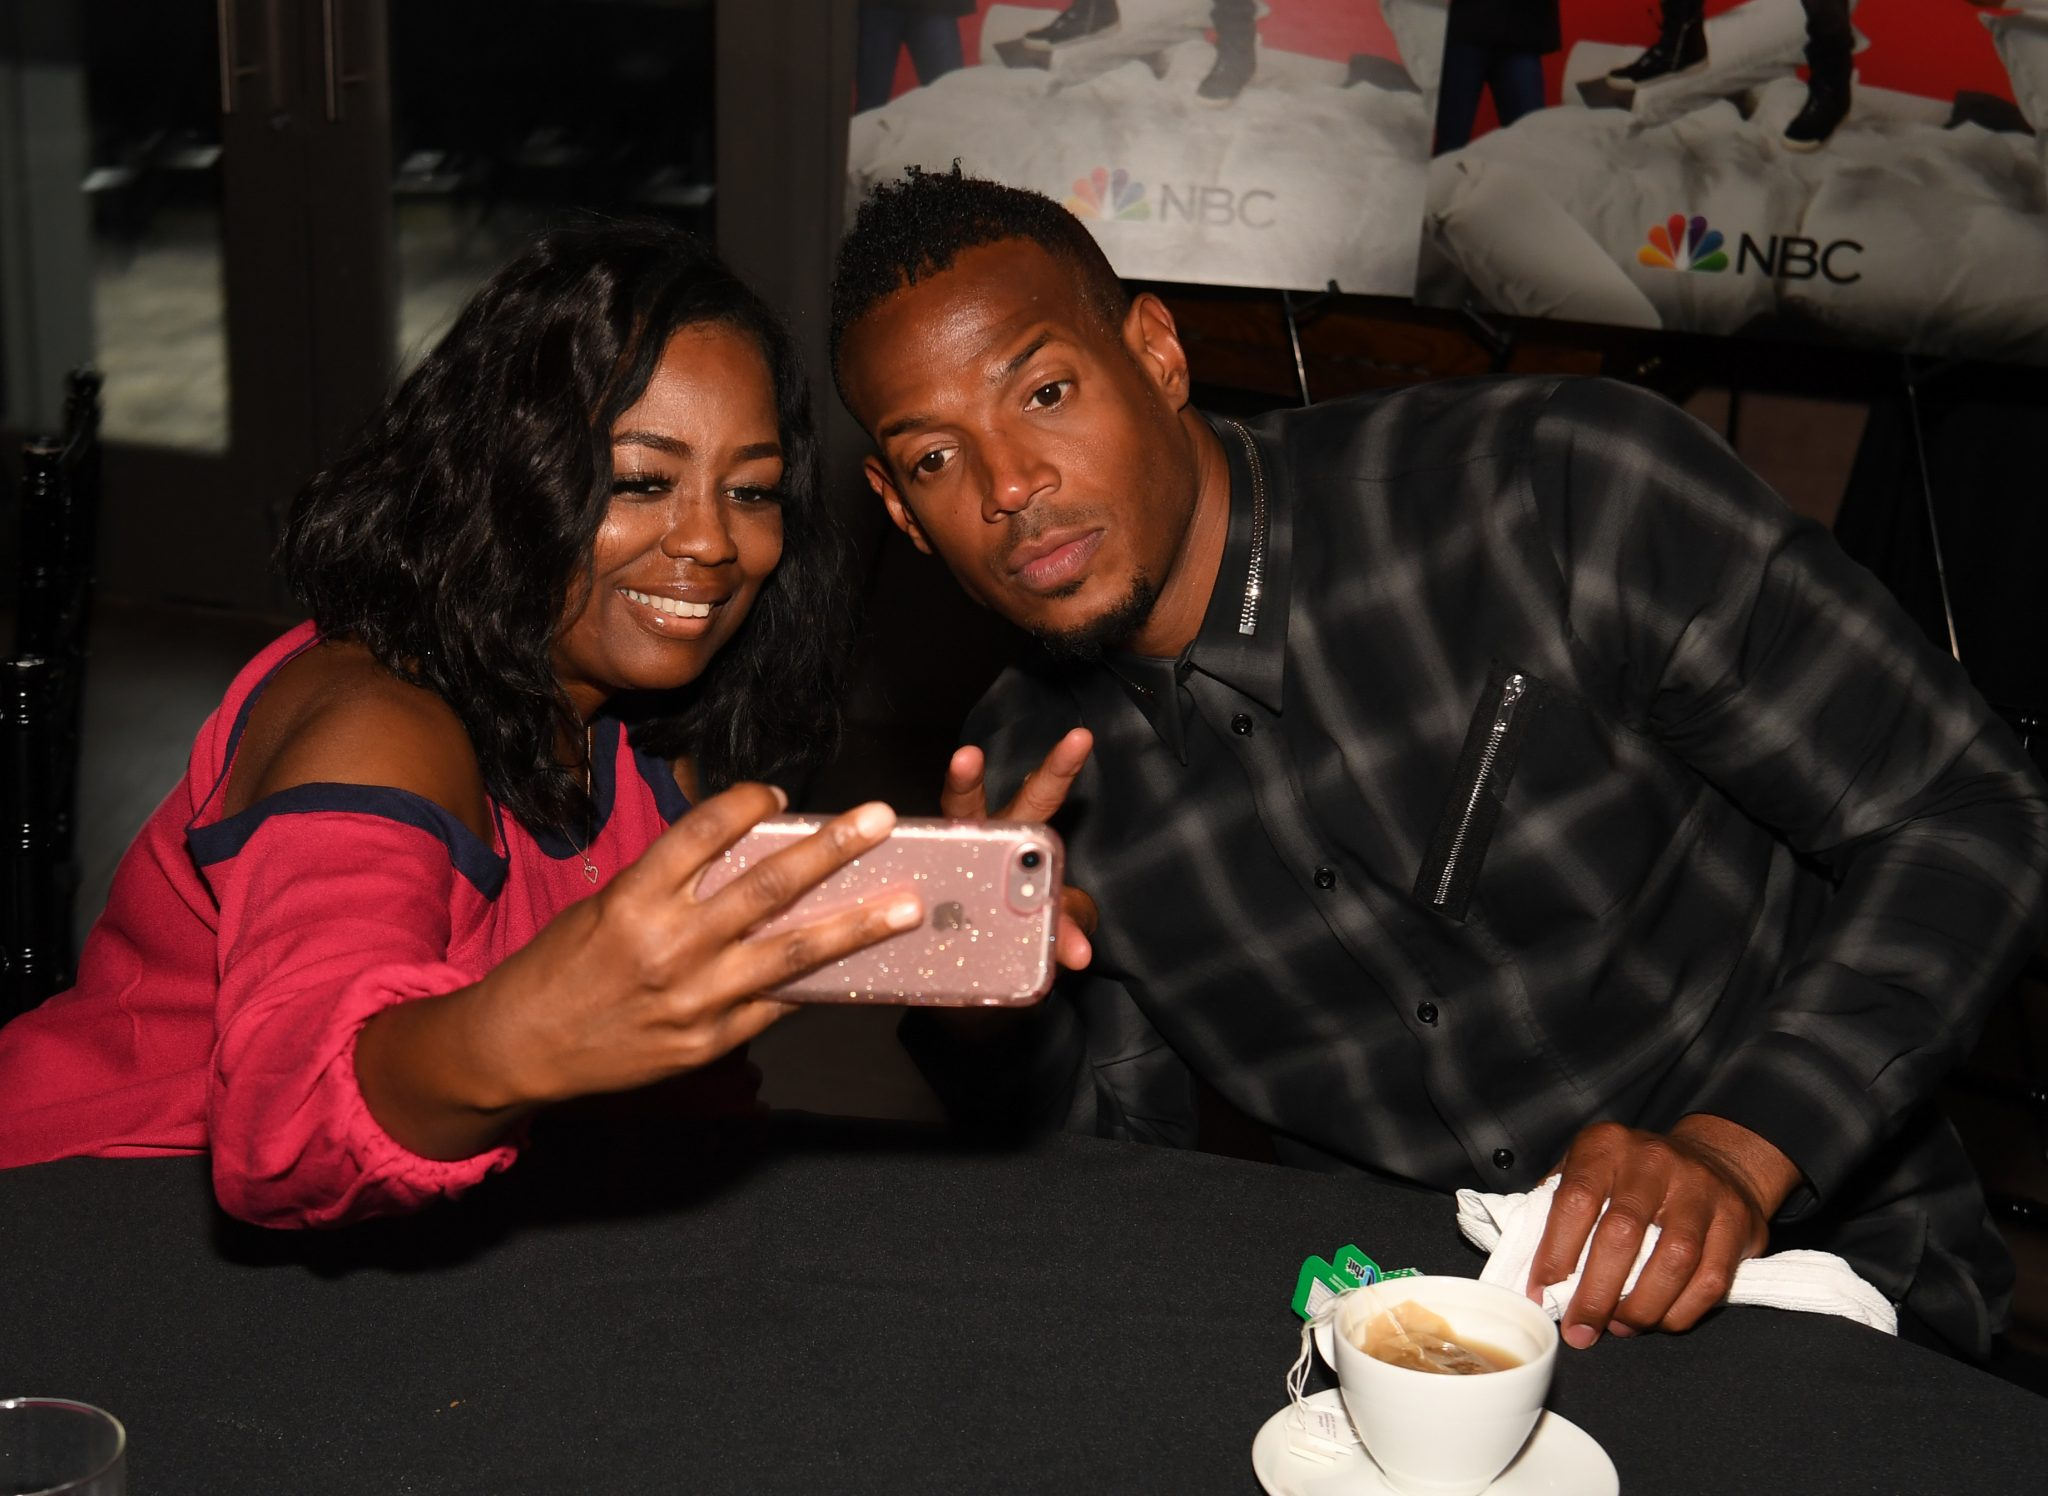 Marlon Wayans Private Dinner In ATL - Talking With Tami